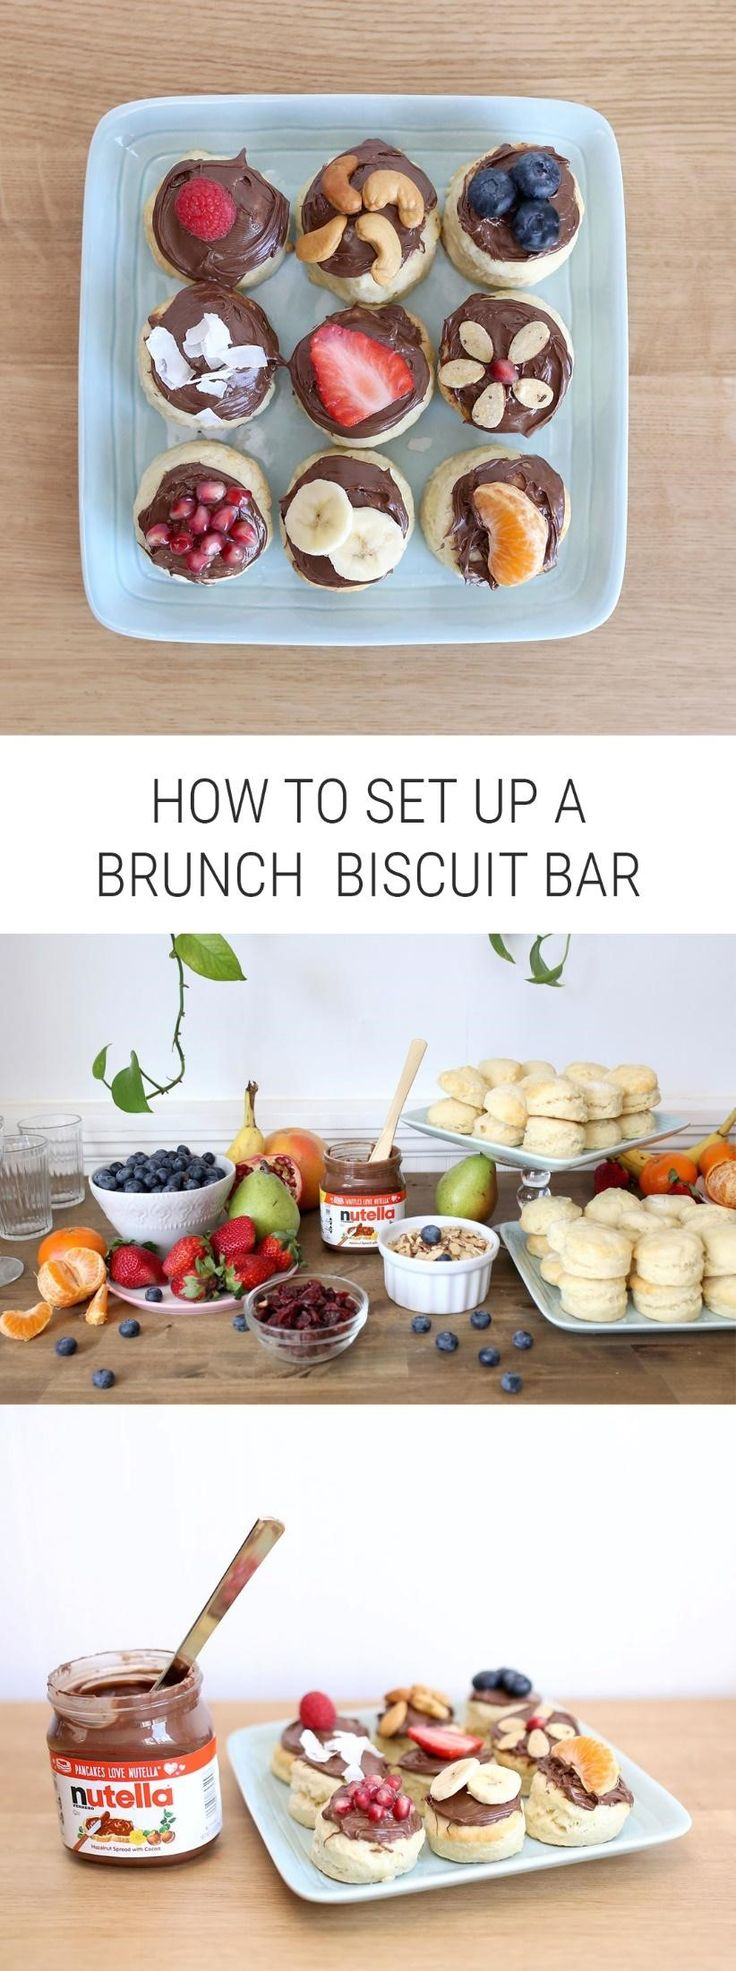 #Ad Learn how to put together a cozy, yummy brunch biscuit bar with Nutella® hazelnut spread, including lots of delicious fruit and nut toppings. It's the perfect breakfast idea for a mom gathering or a baby shower or bridal shower. @NutellaUSA